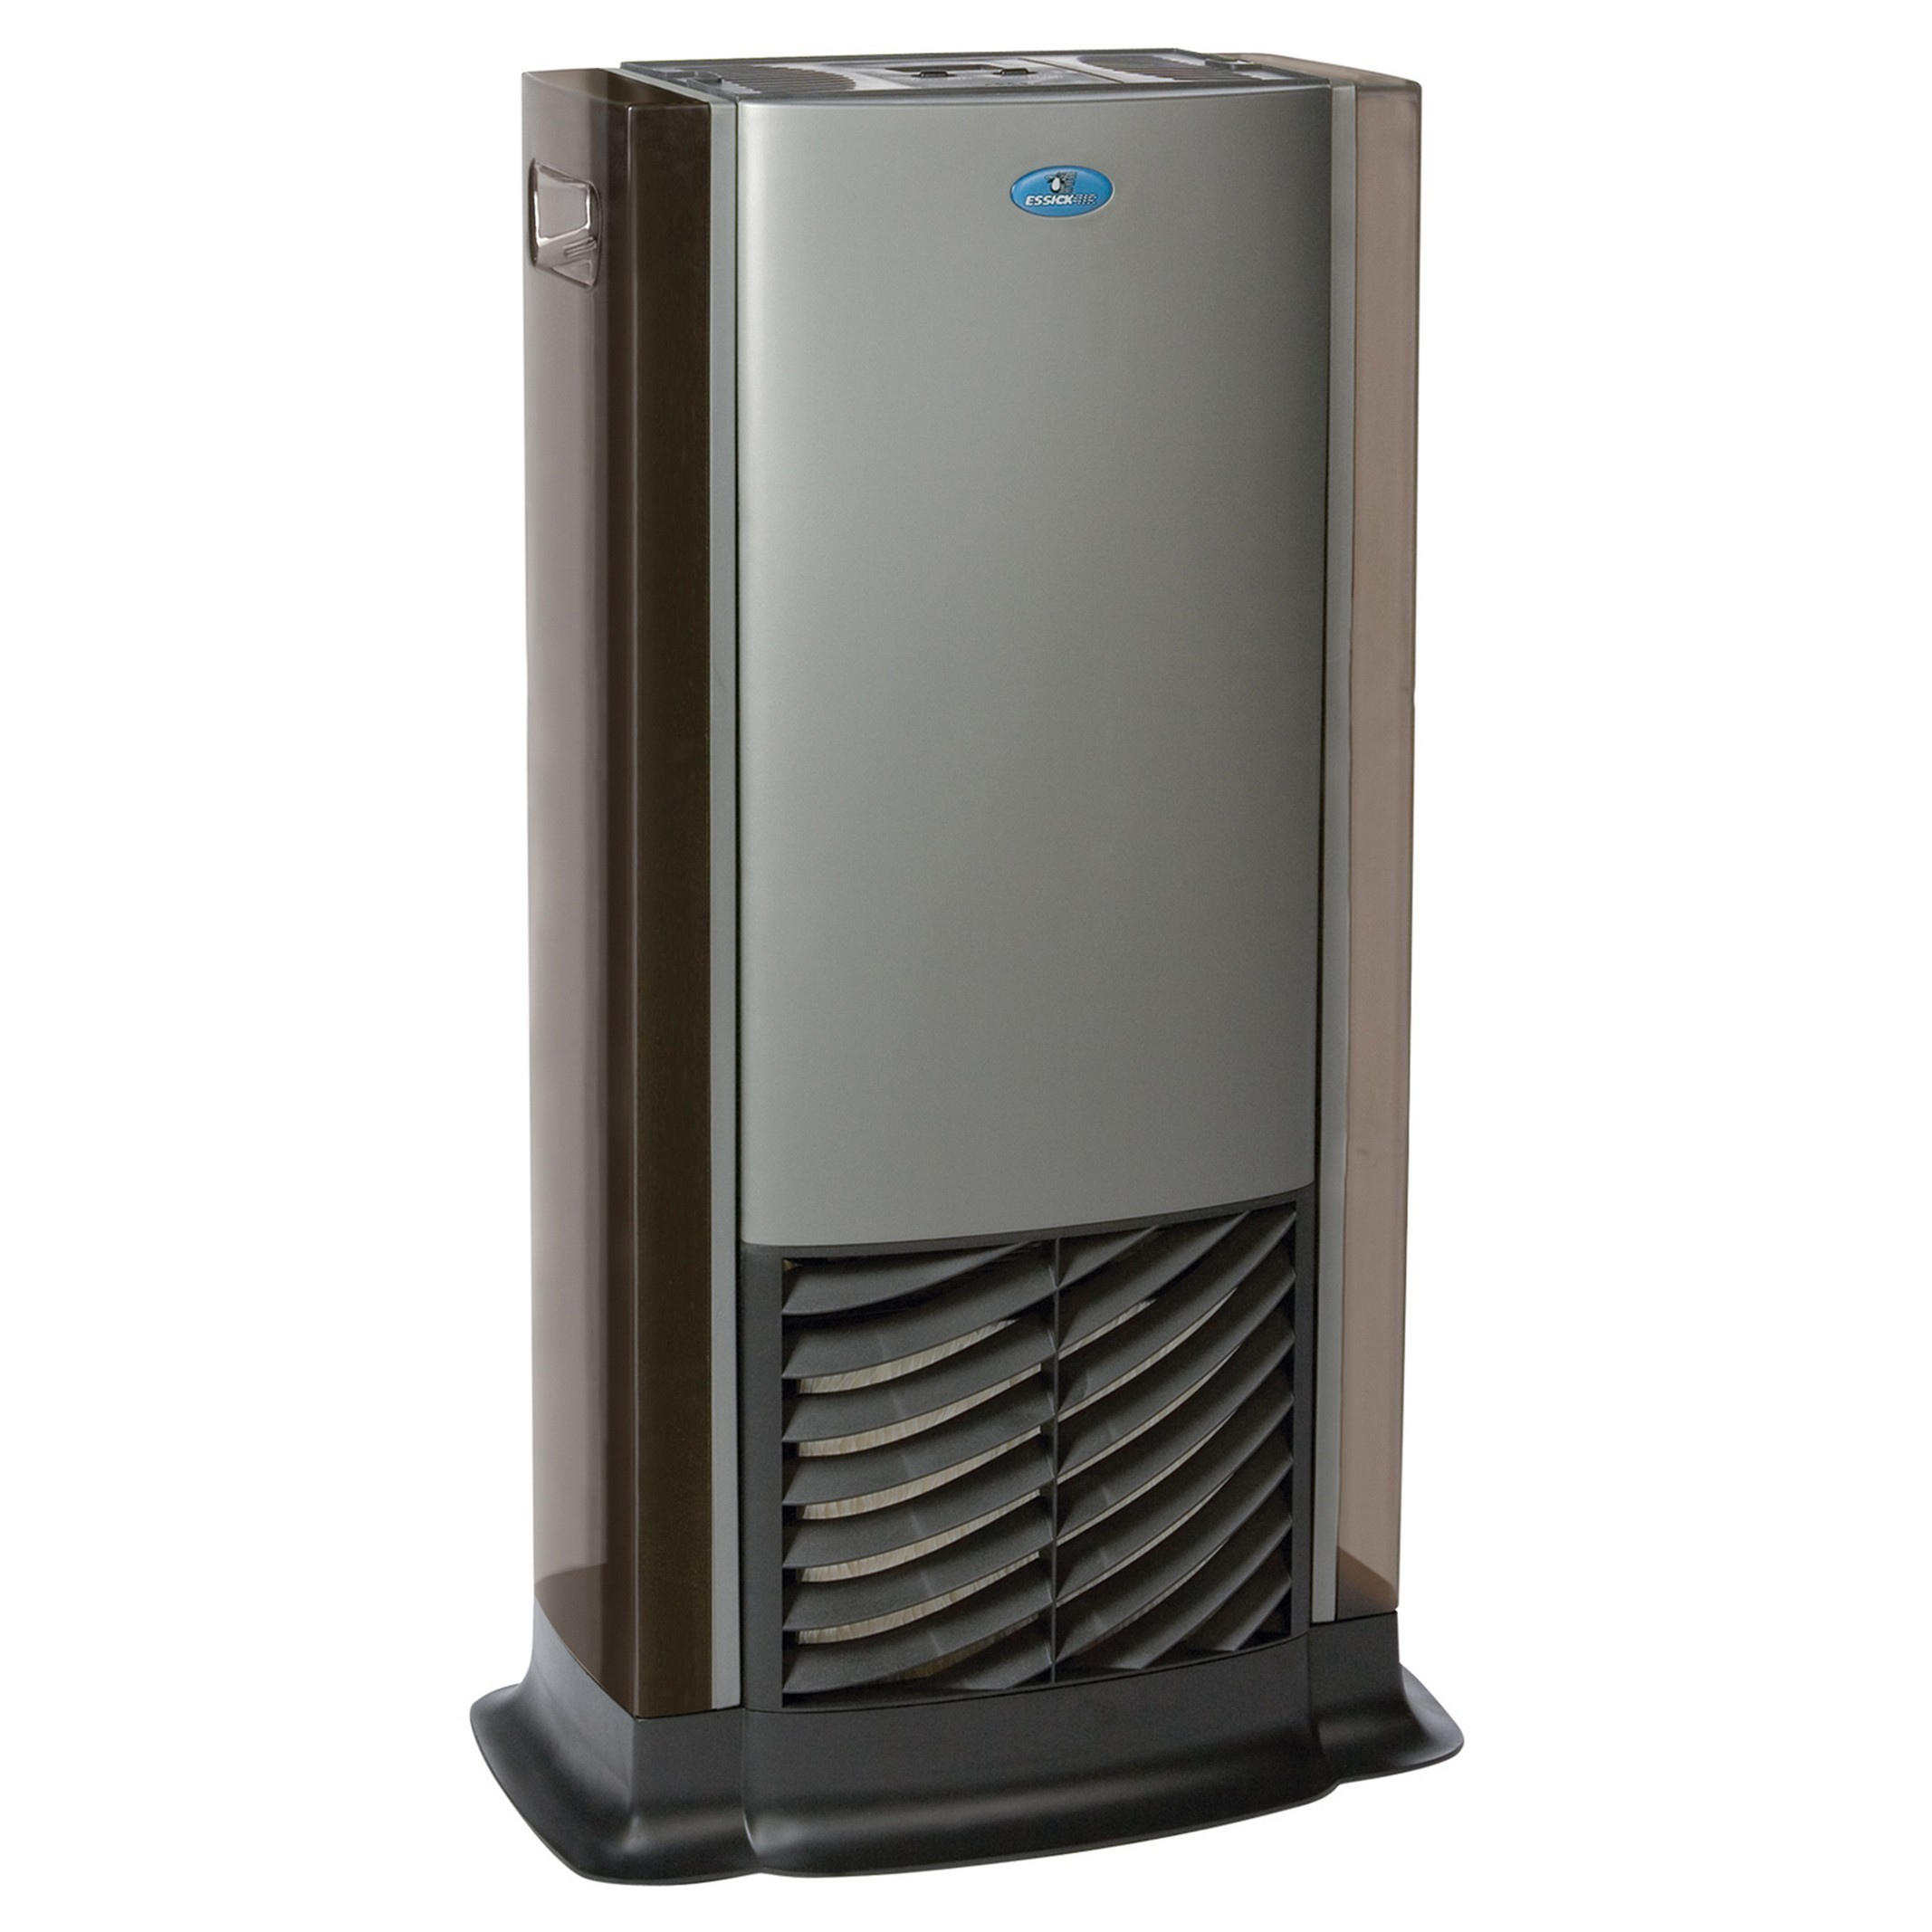 Essick Air D46 720 Tower Multi Room Evaporative Humidifier